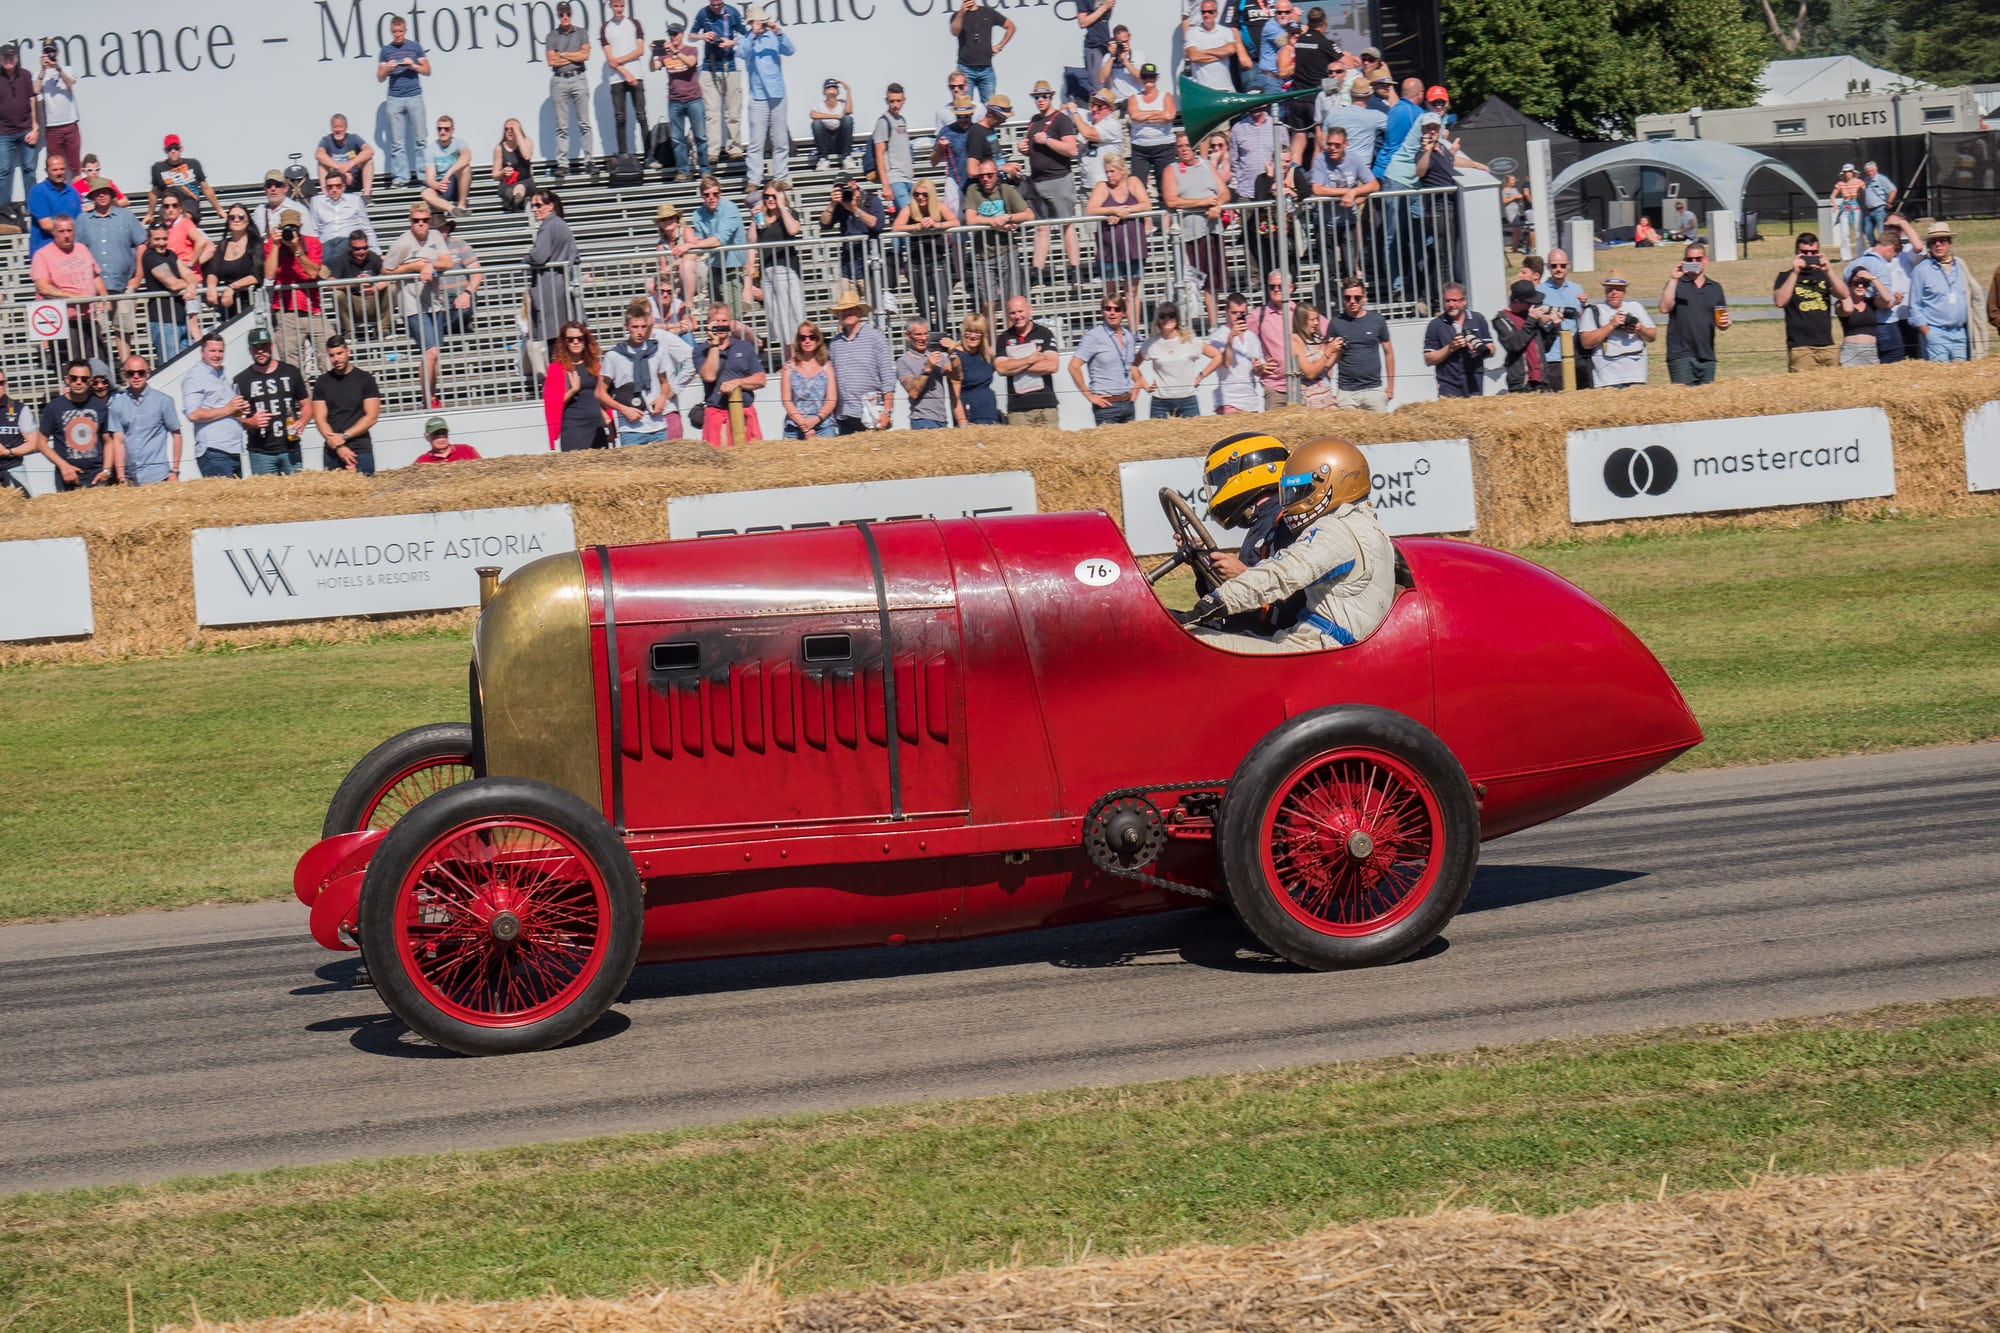 Fiat S76  dispatches: with montblanc at the petrolhead's paradise that is the goodwood festival of speed Dispatches: With Montblanc At The Petrolhead's Paradise That Is The Goodwood Festival Of Speed P7021789